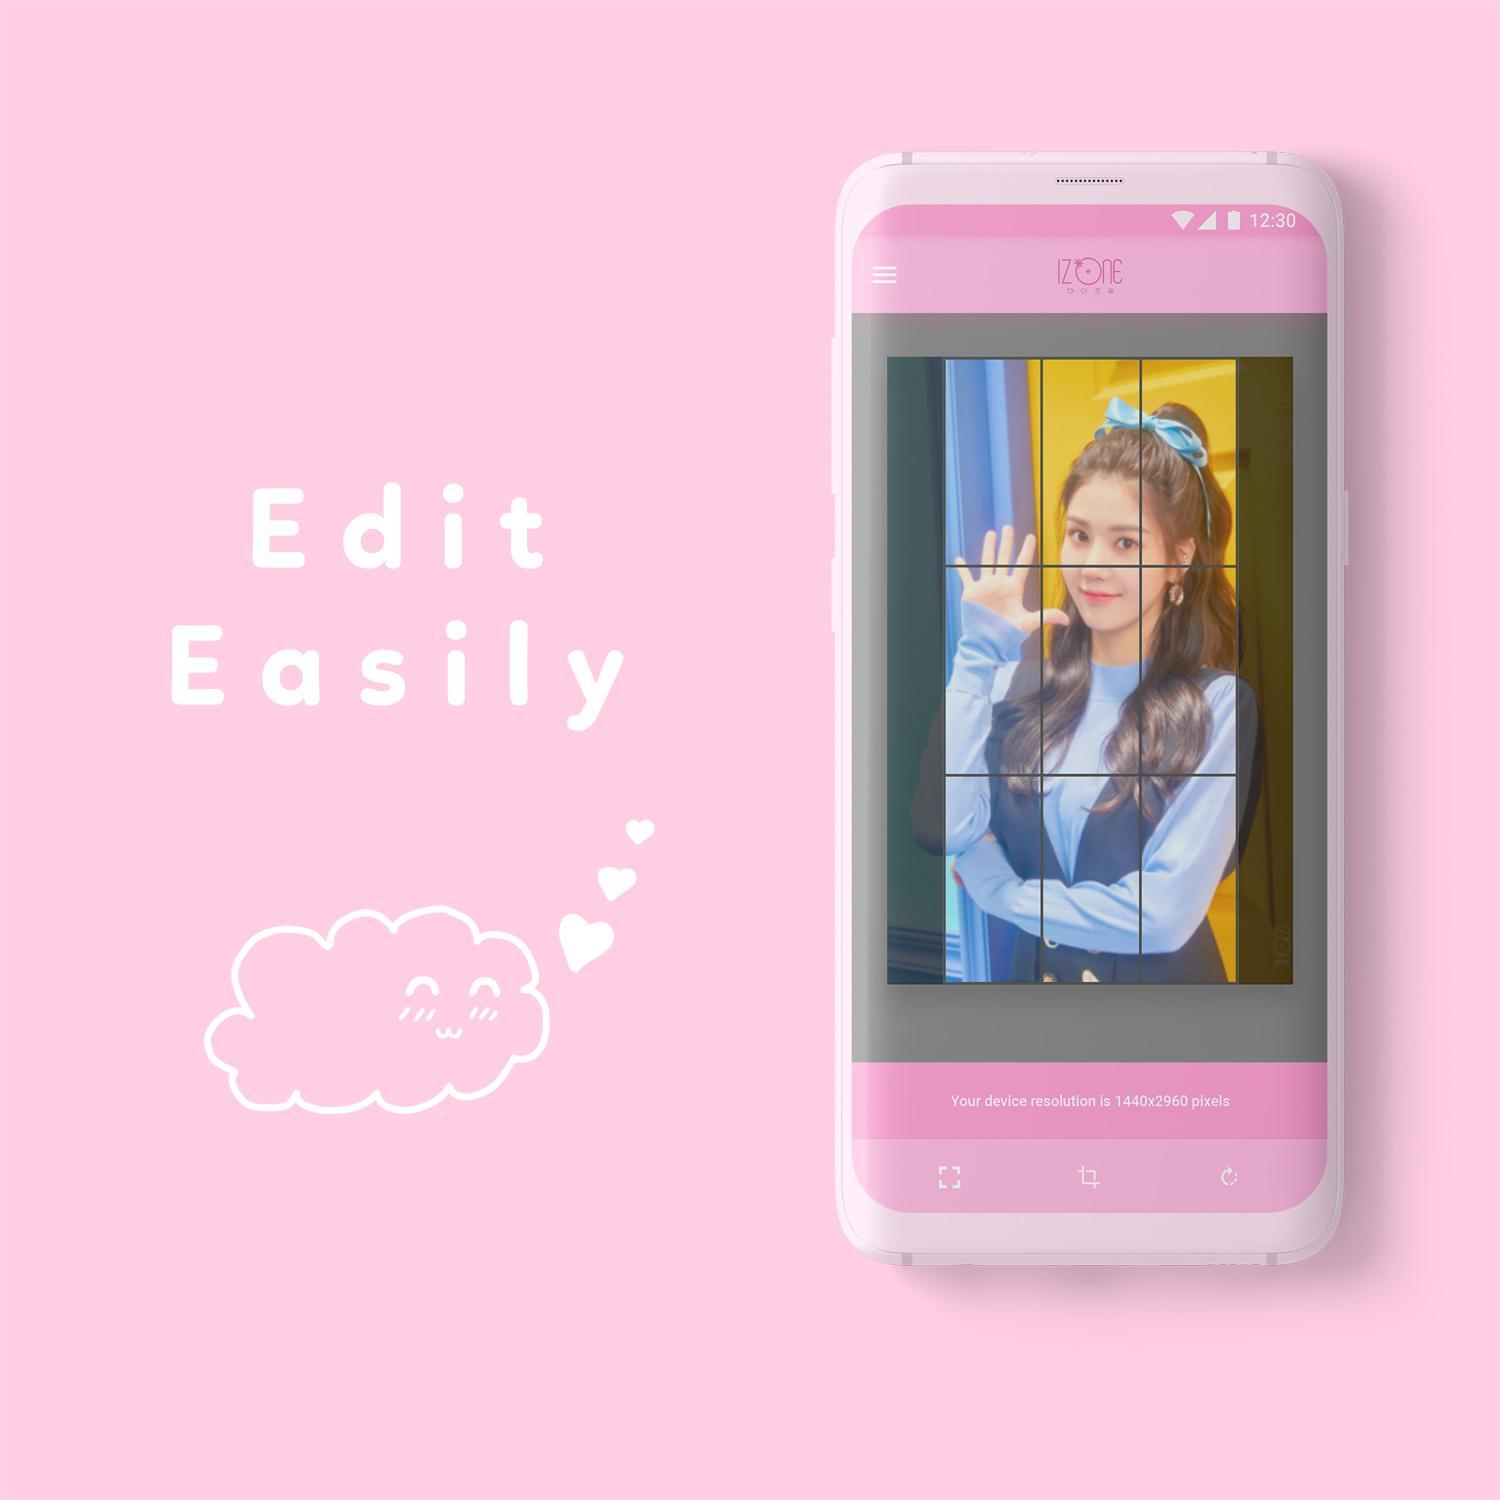 IZONE - Best wallpaper 2019 2K HD Full HD for Android - APK Download